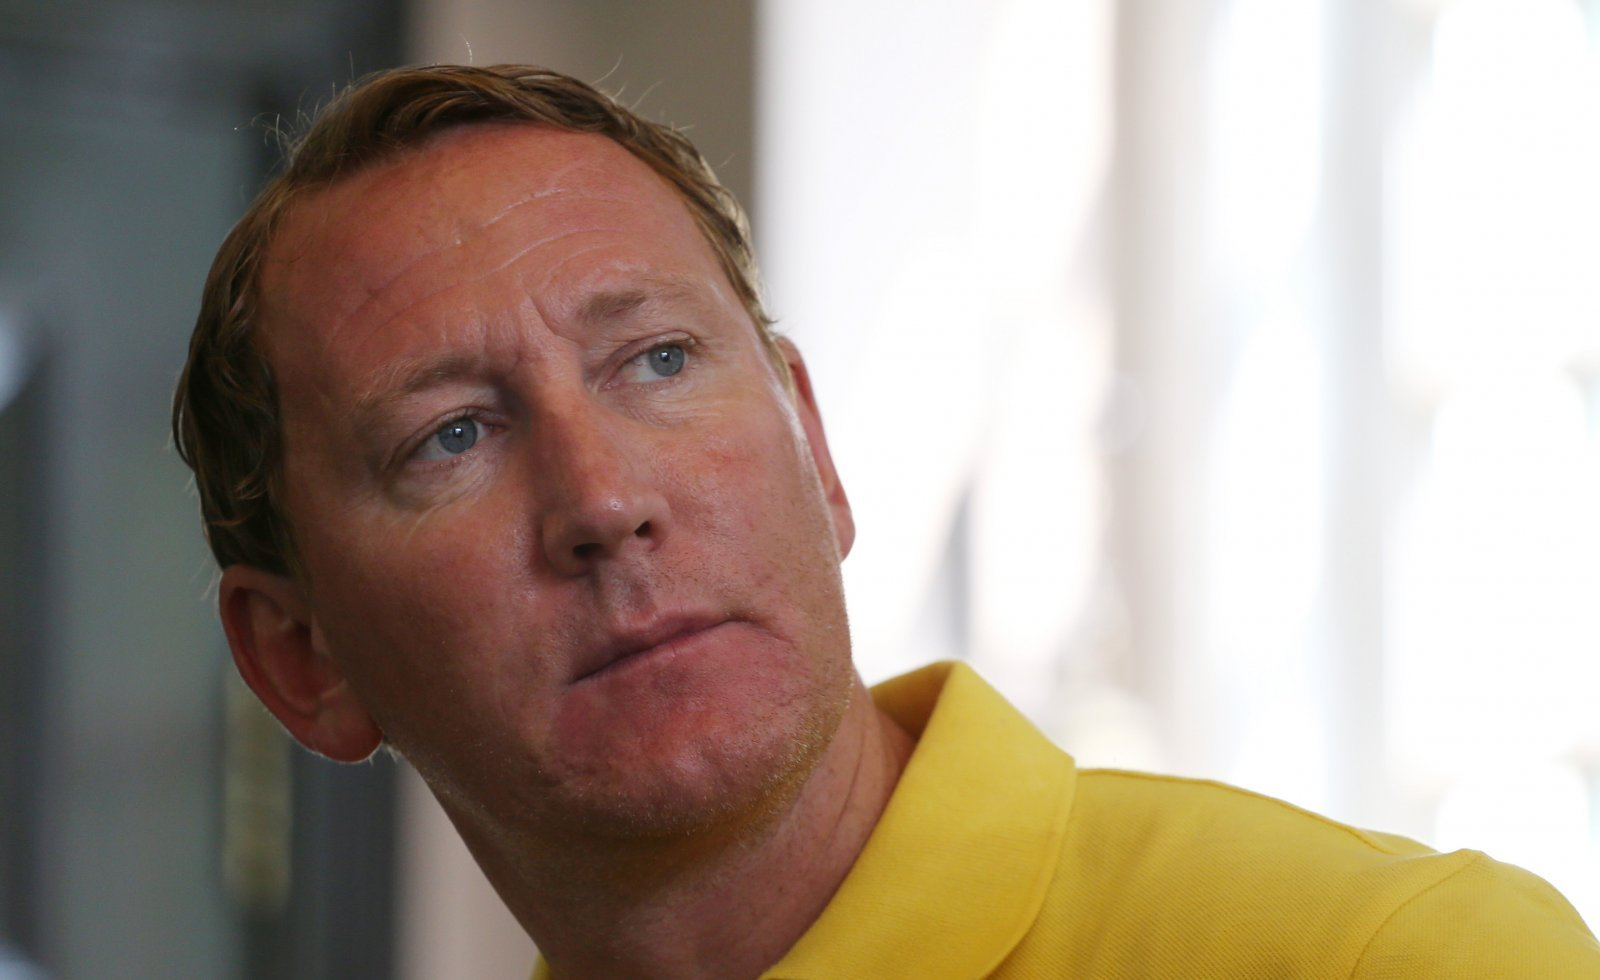 Middlesbrough: Fans praise Ray Parlour for comments about his time at the club